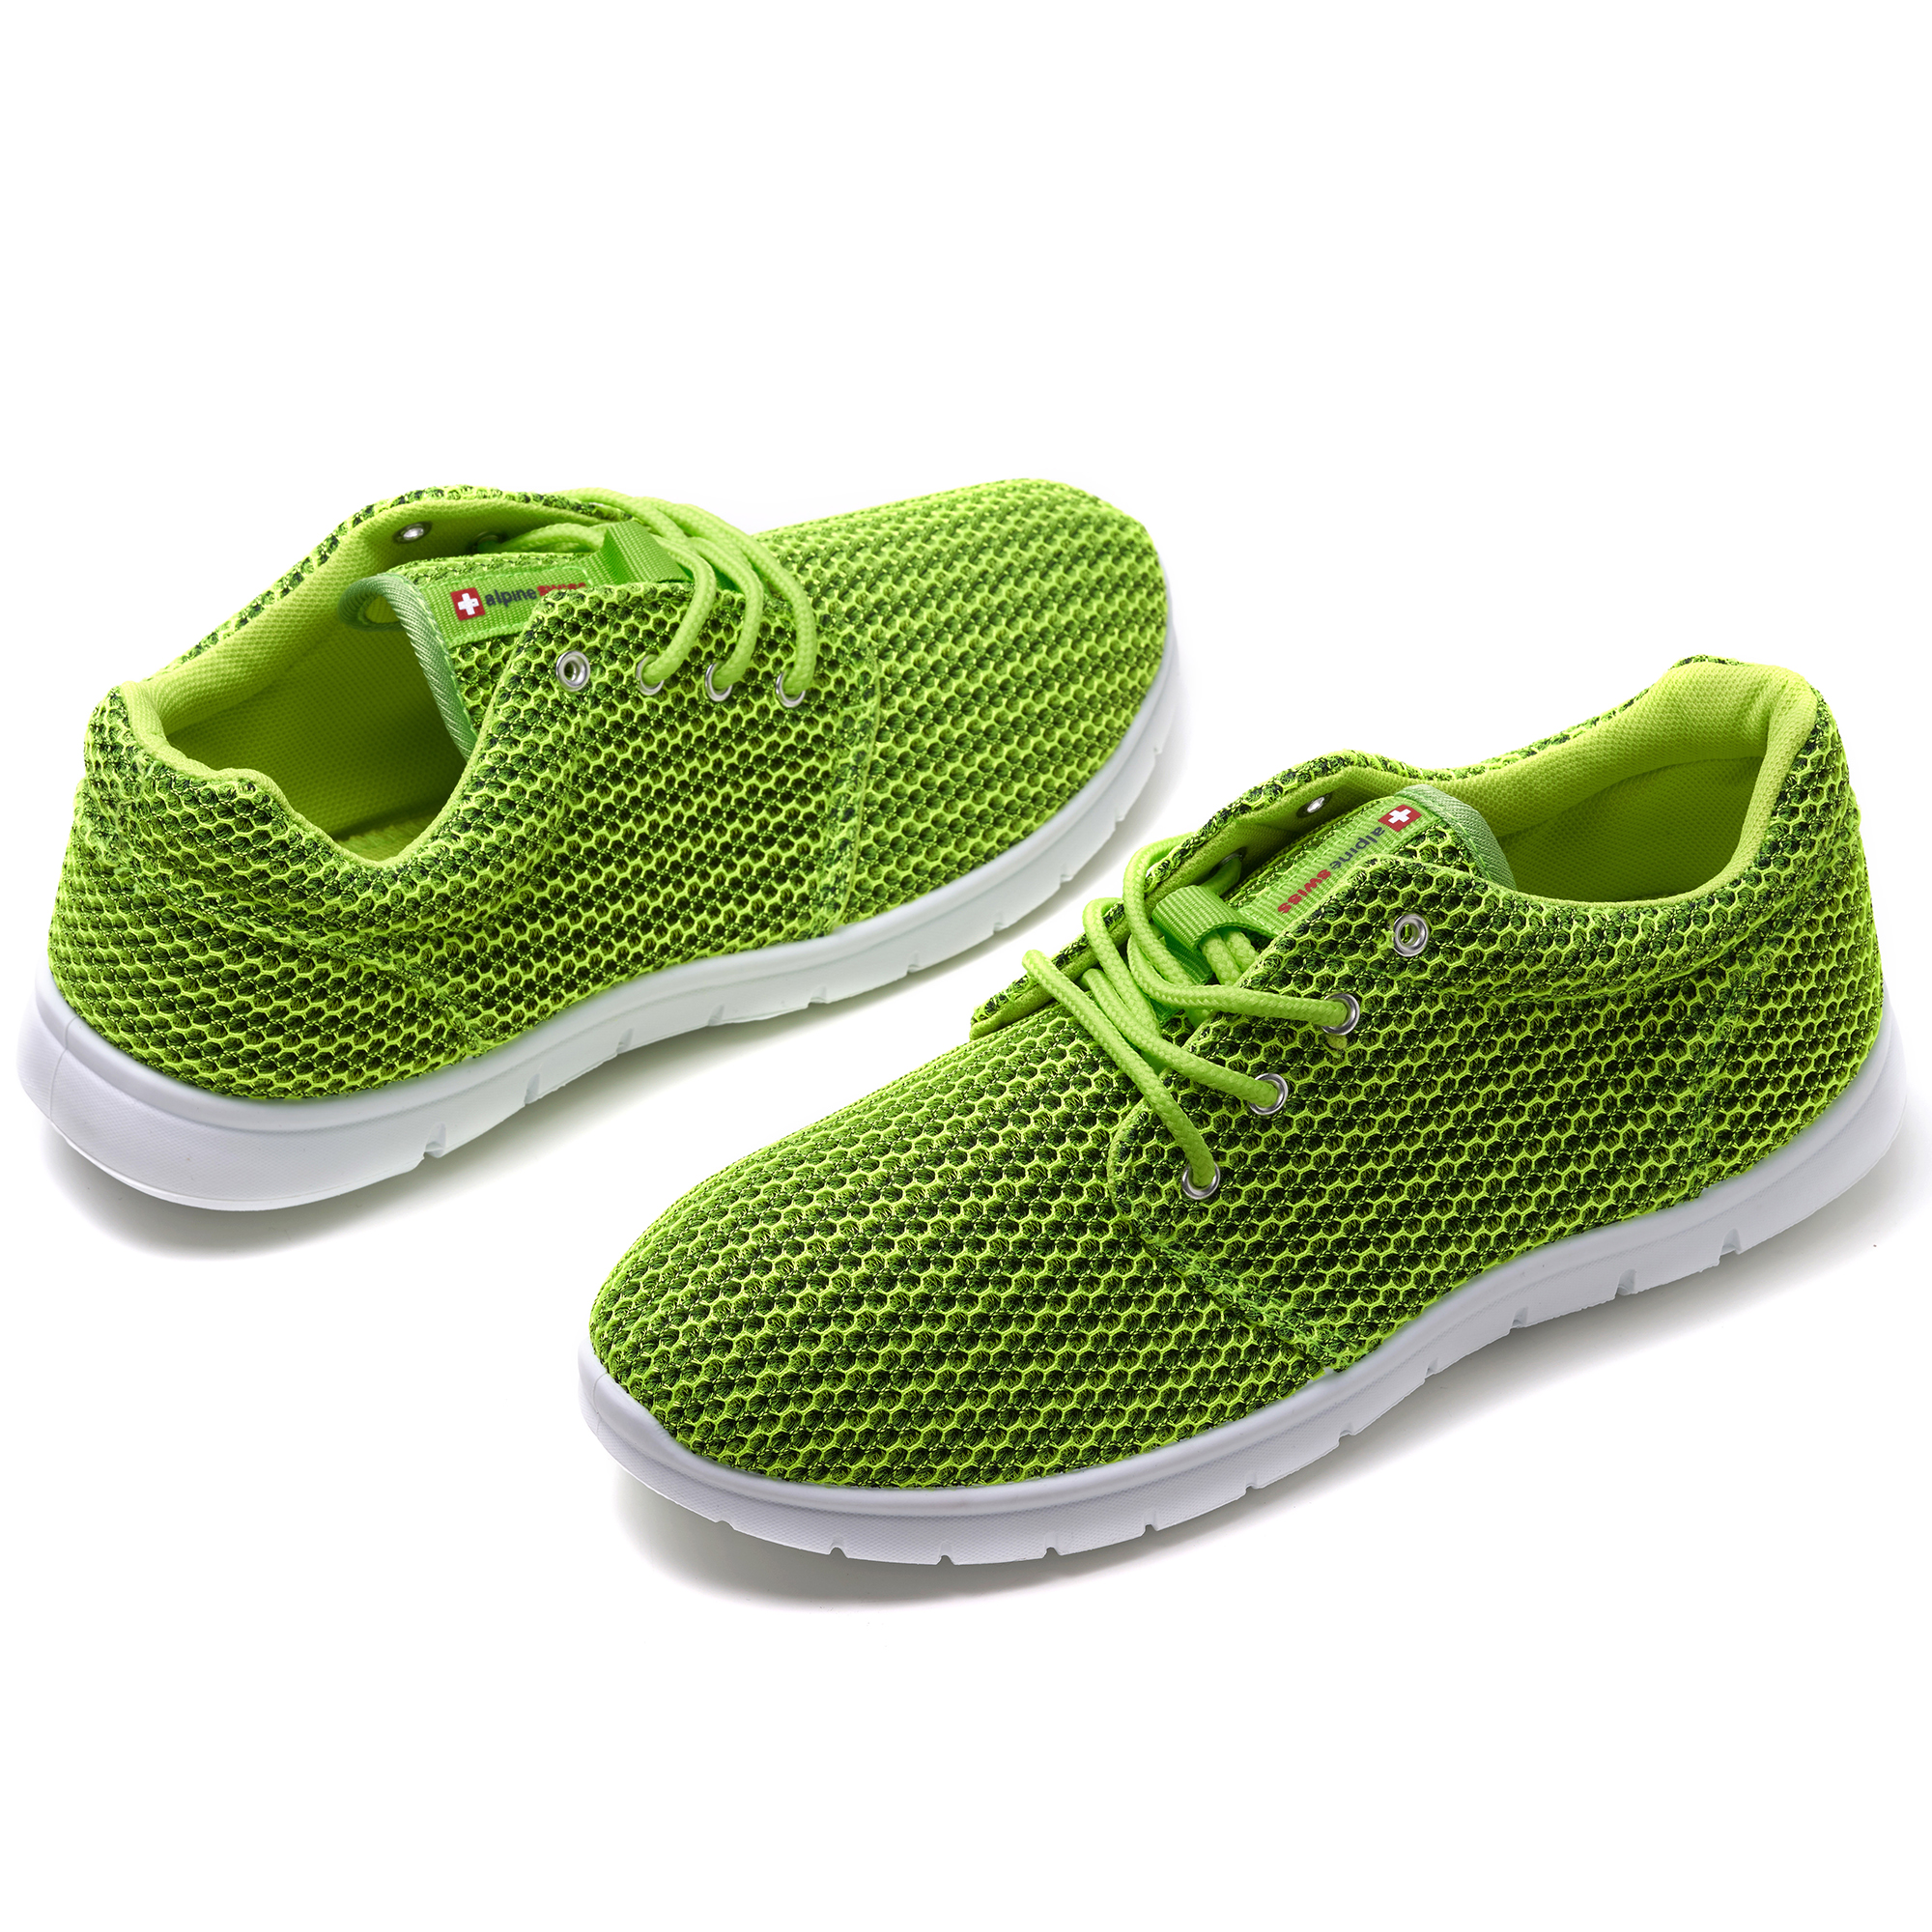 Alpine-Swiss-Kilian-Mesh-Sneakers-Casual-Shoes-Mens-amp-Womens-Lightweight-Trainer thumbnail 61